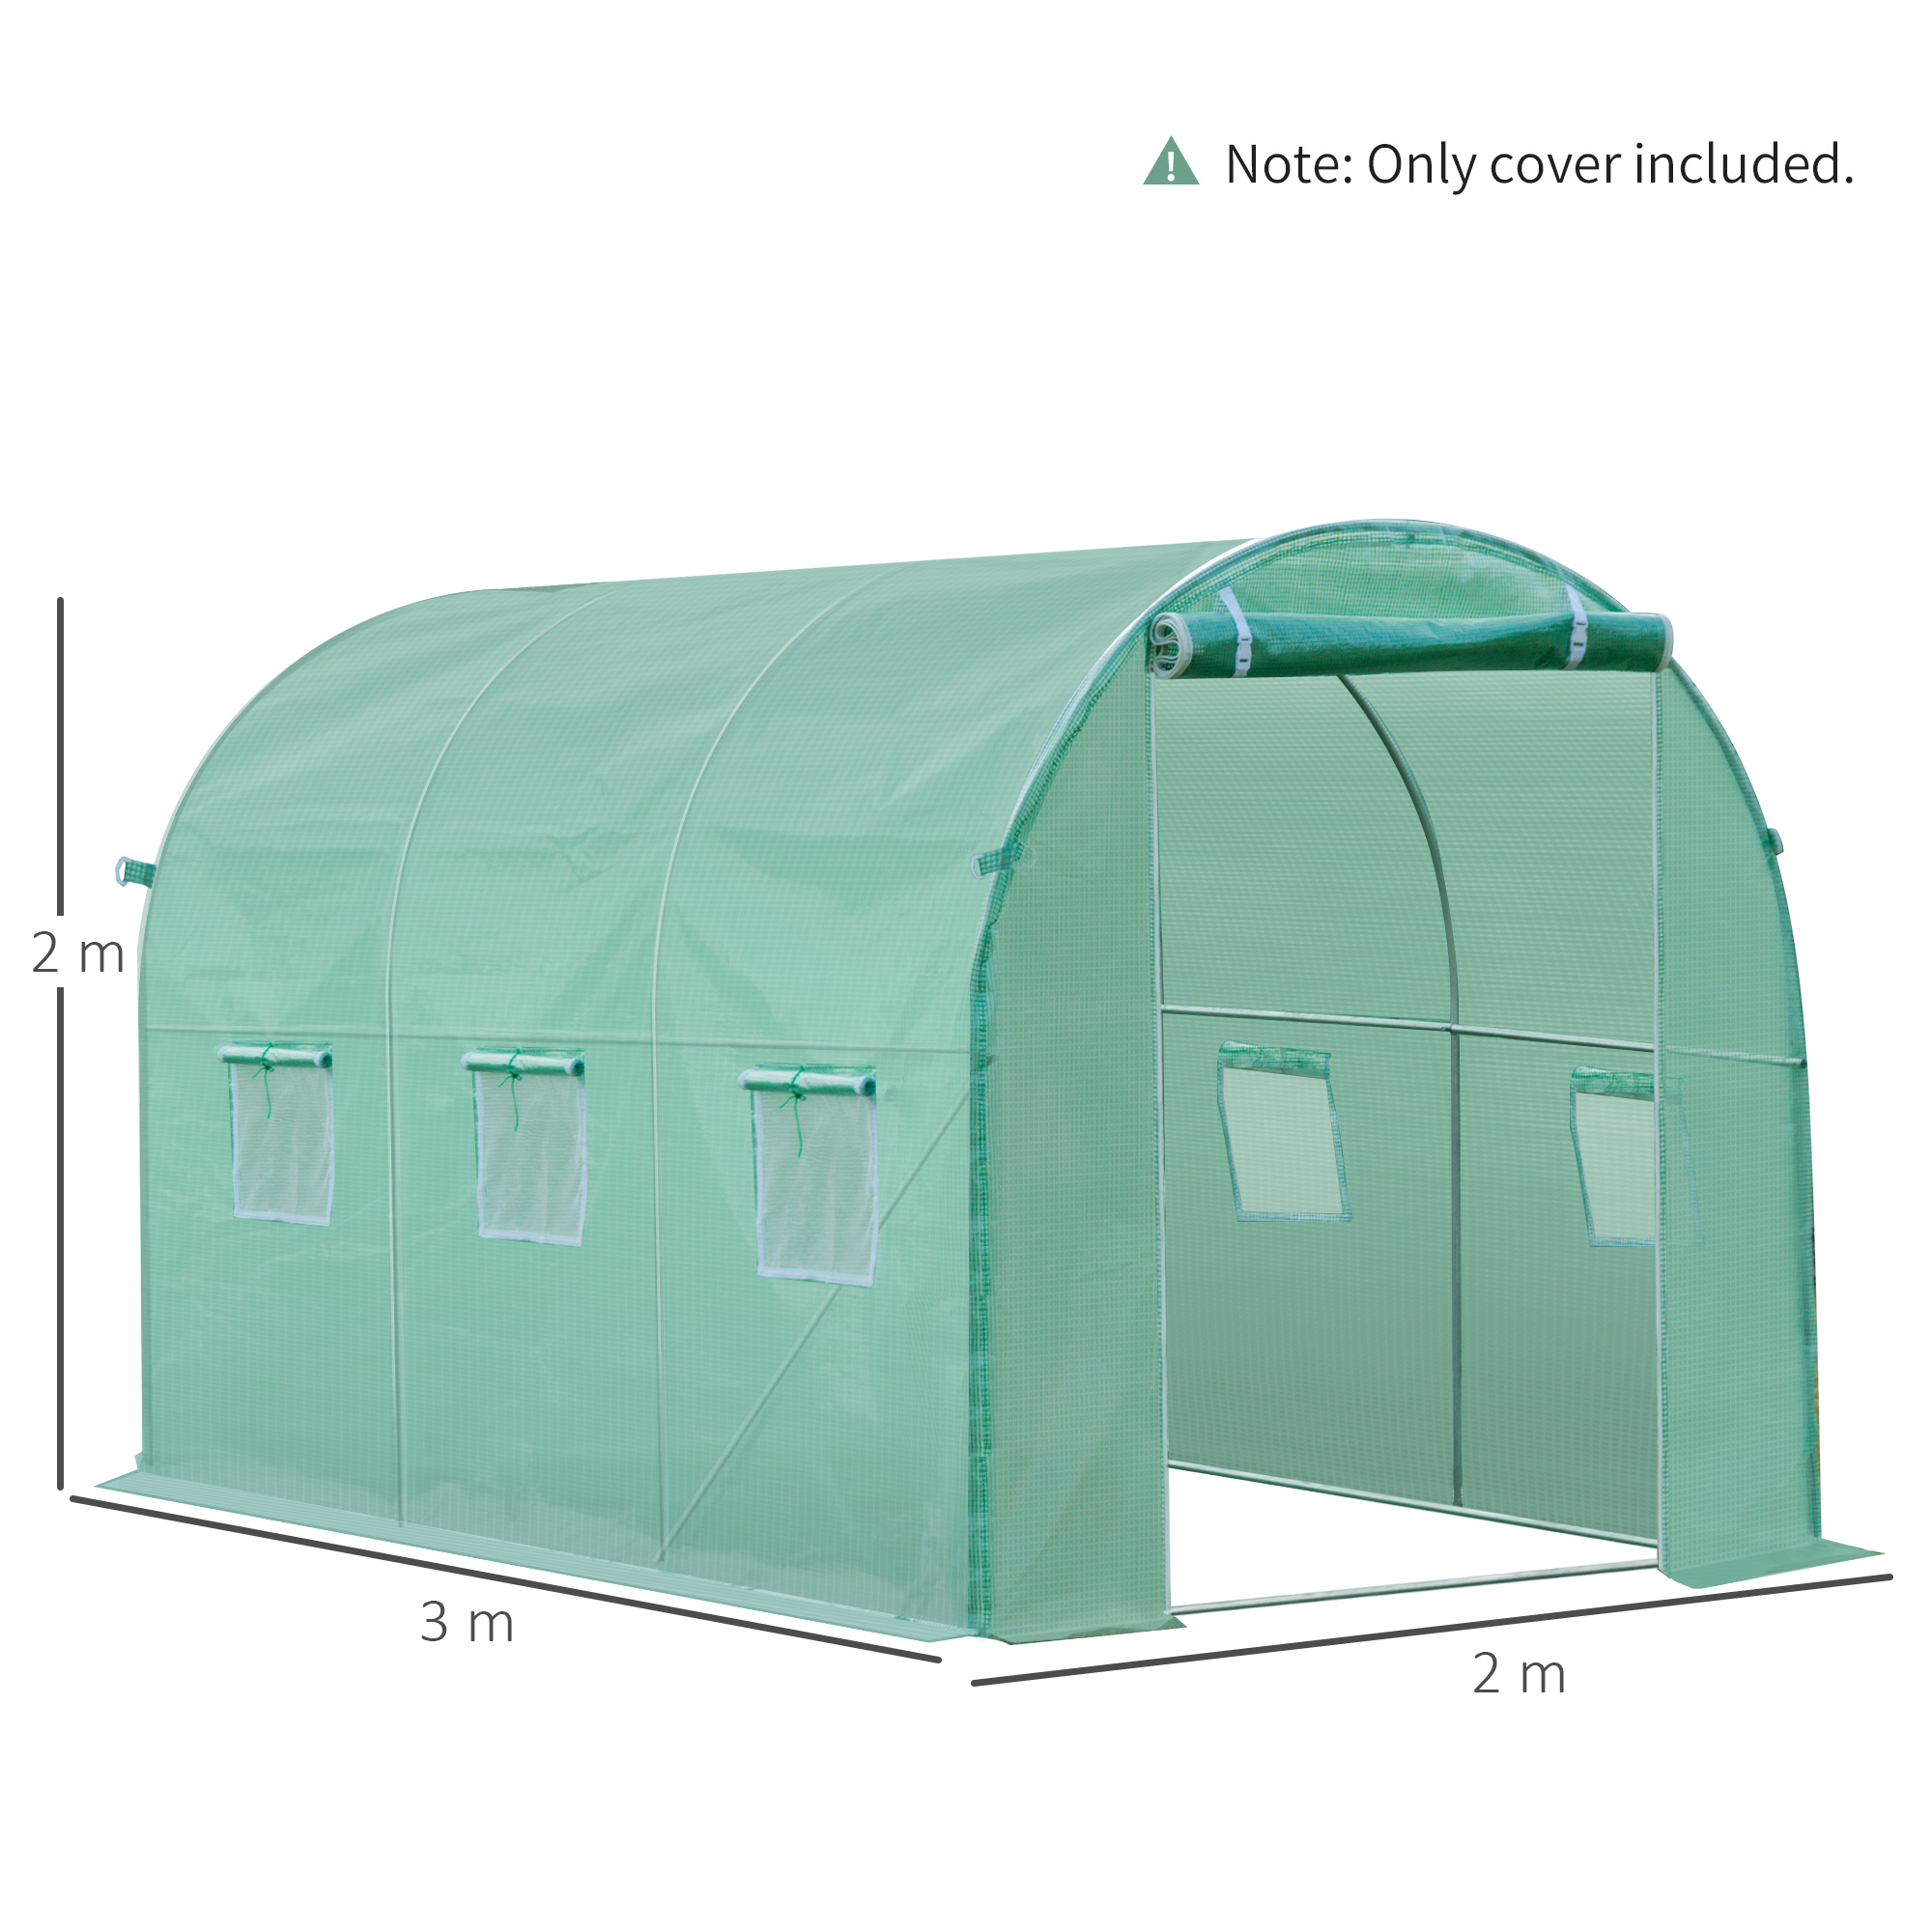 Indexbild 3 - Greenhouse-Replacement-Cover-ONLY-for-Tunnel-Walk-in-Greenhouse